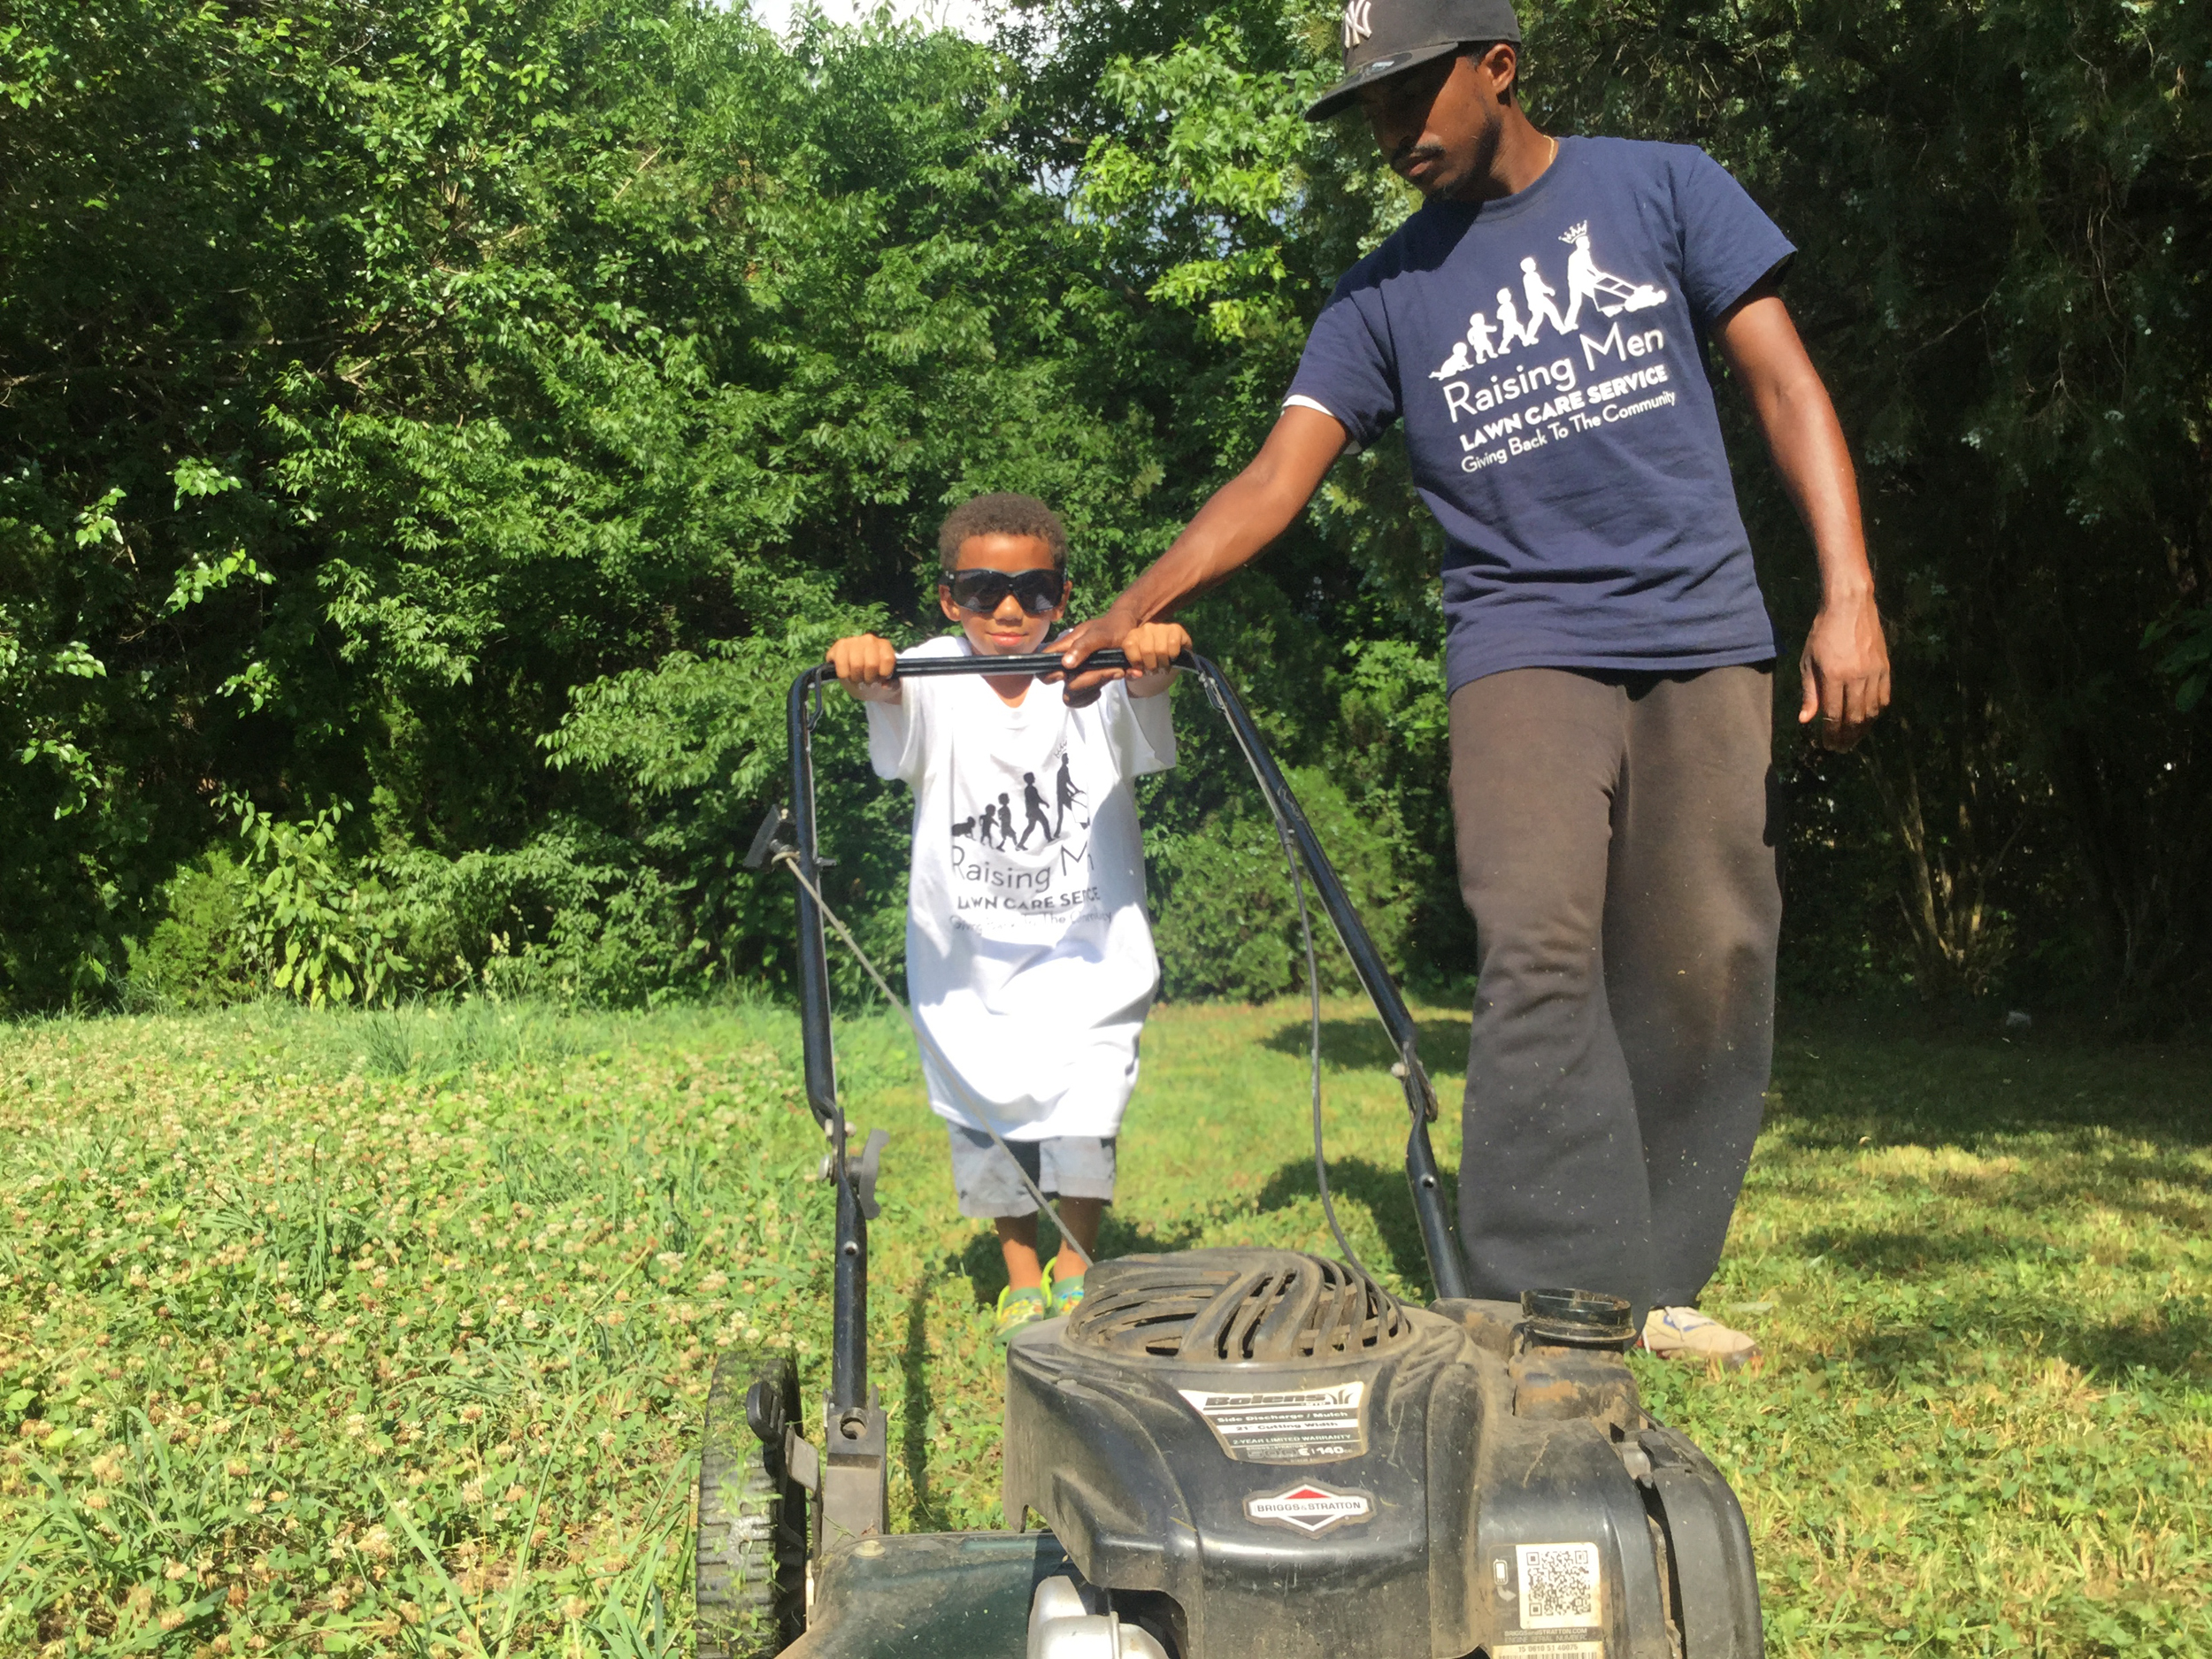 College Student Starting Free Lawn Mowing Business Gave Me Purpose In Life Nbc News